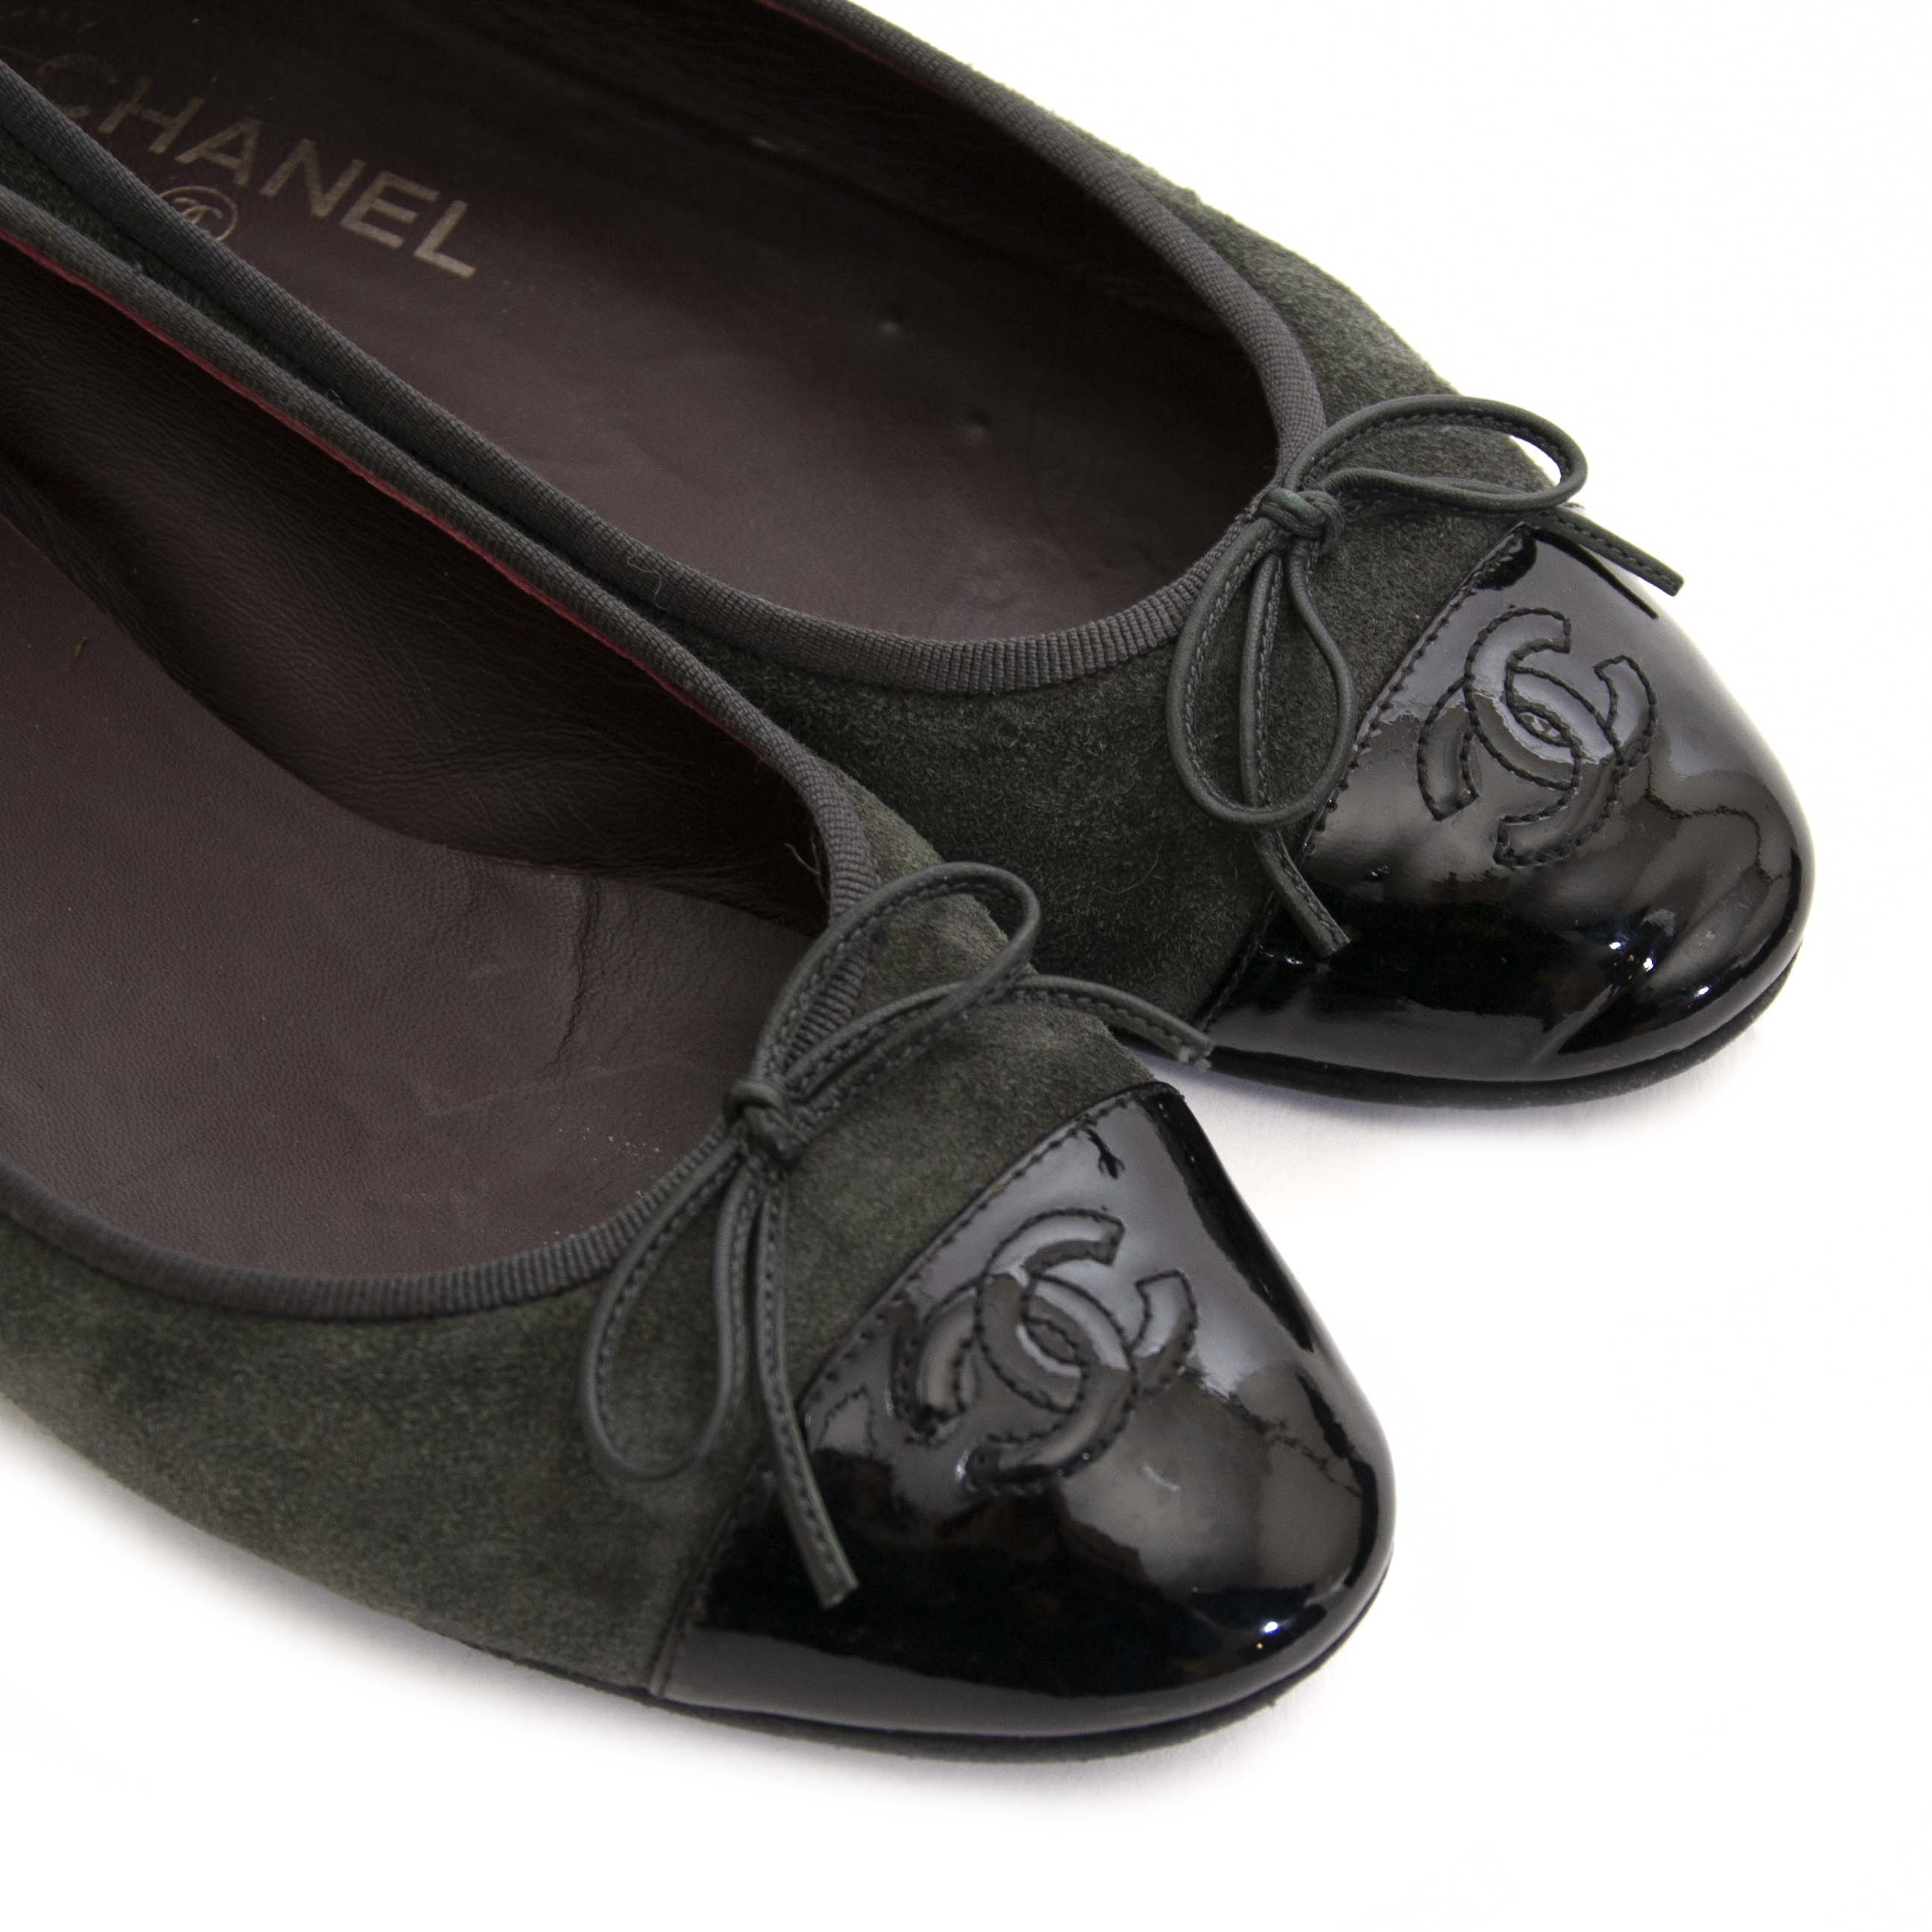 Chanel Suede and Patent Khaki Ballet Flats